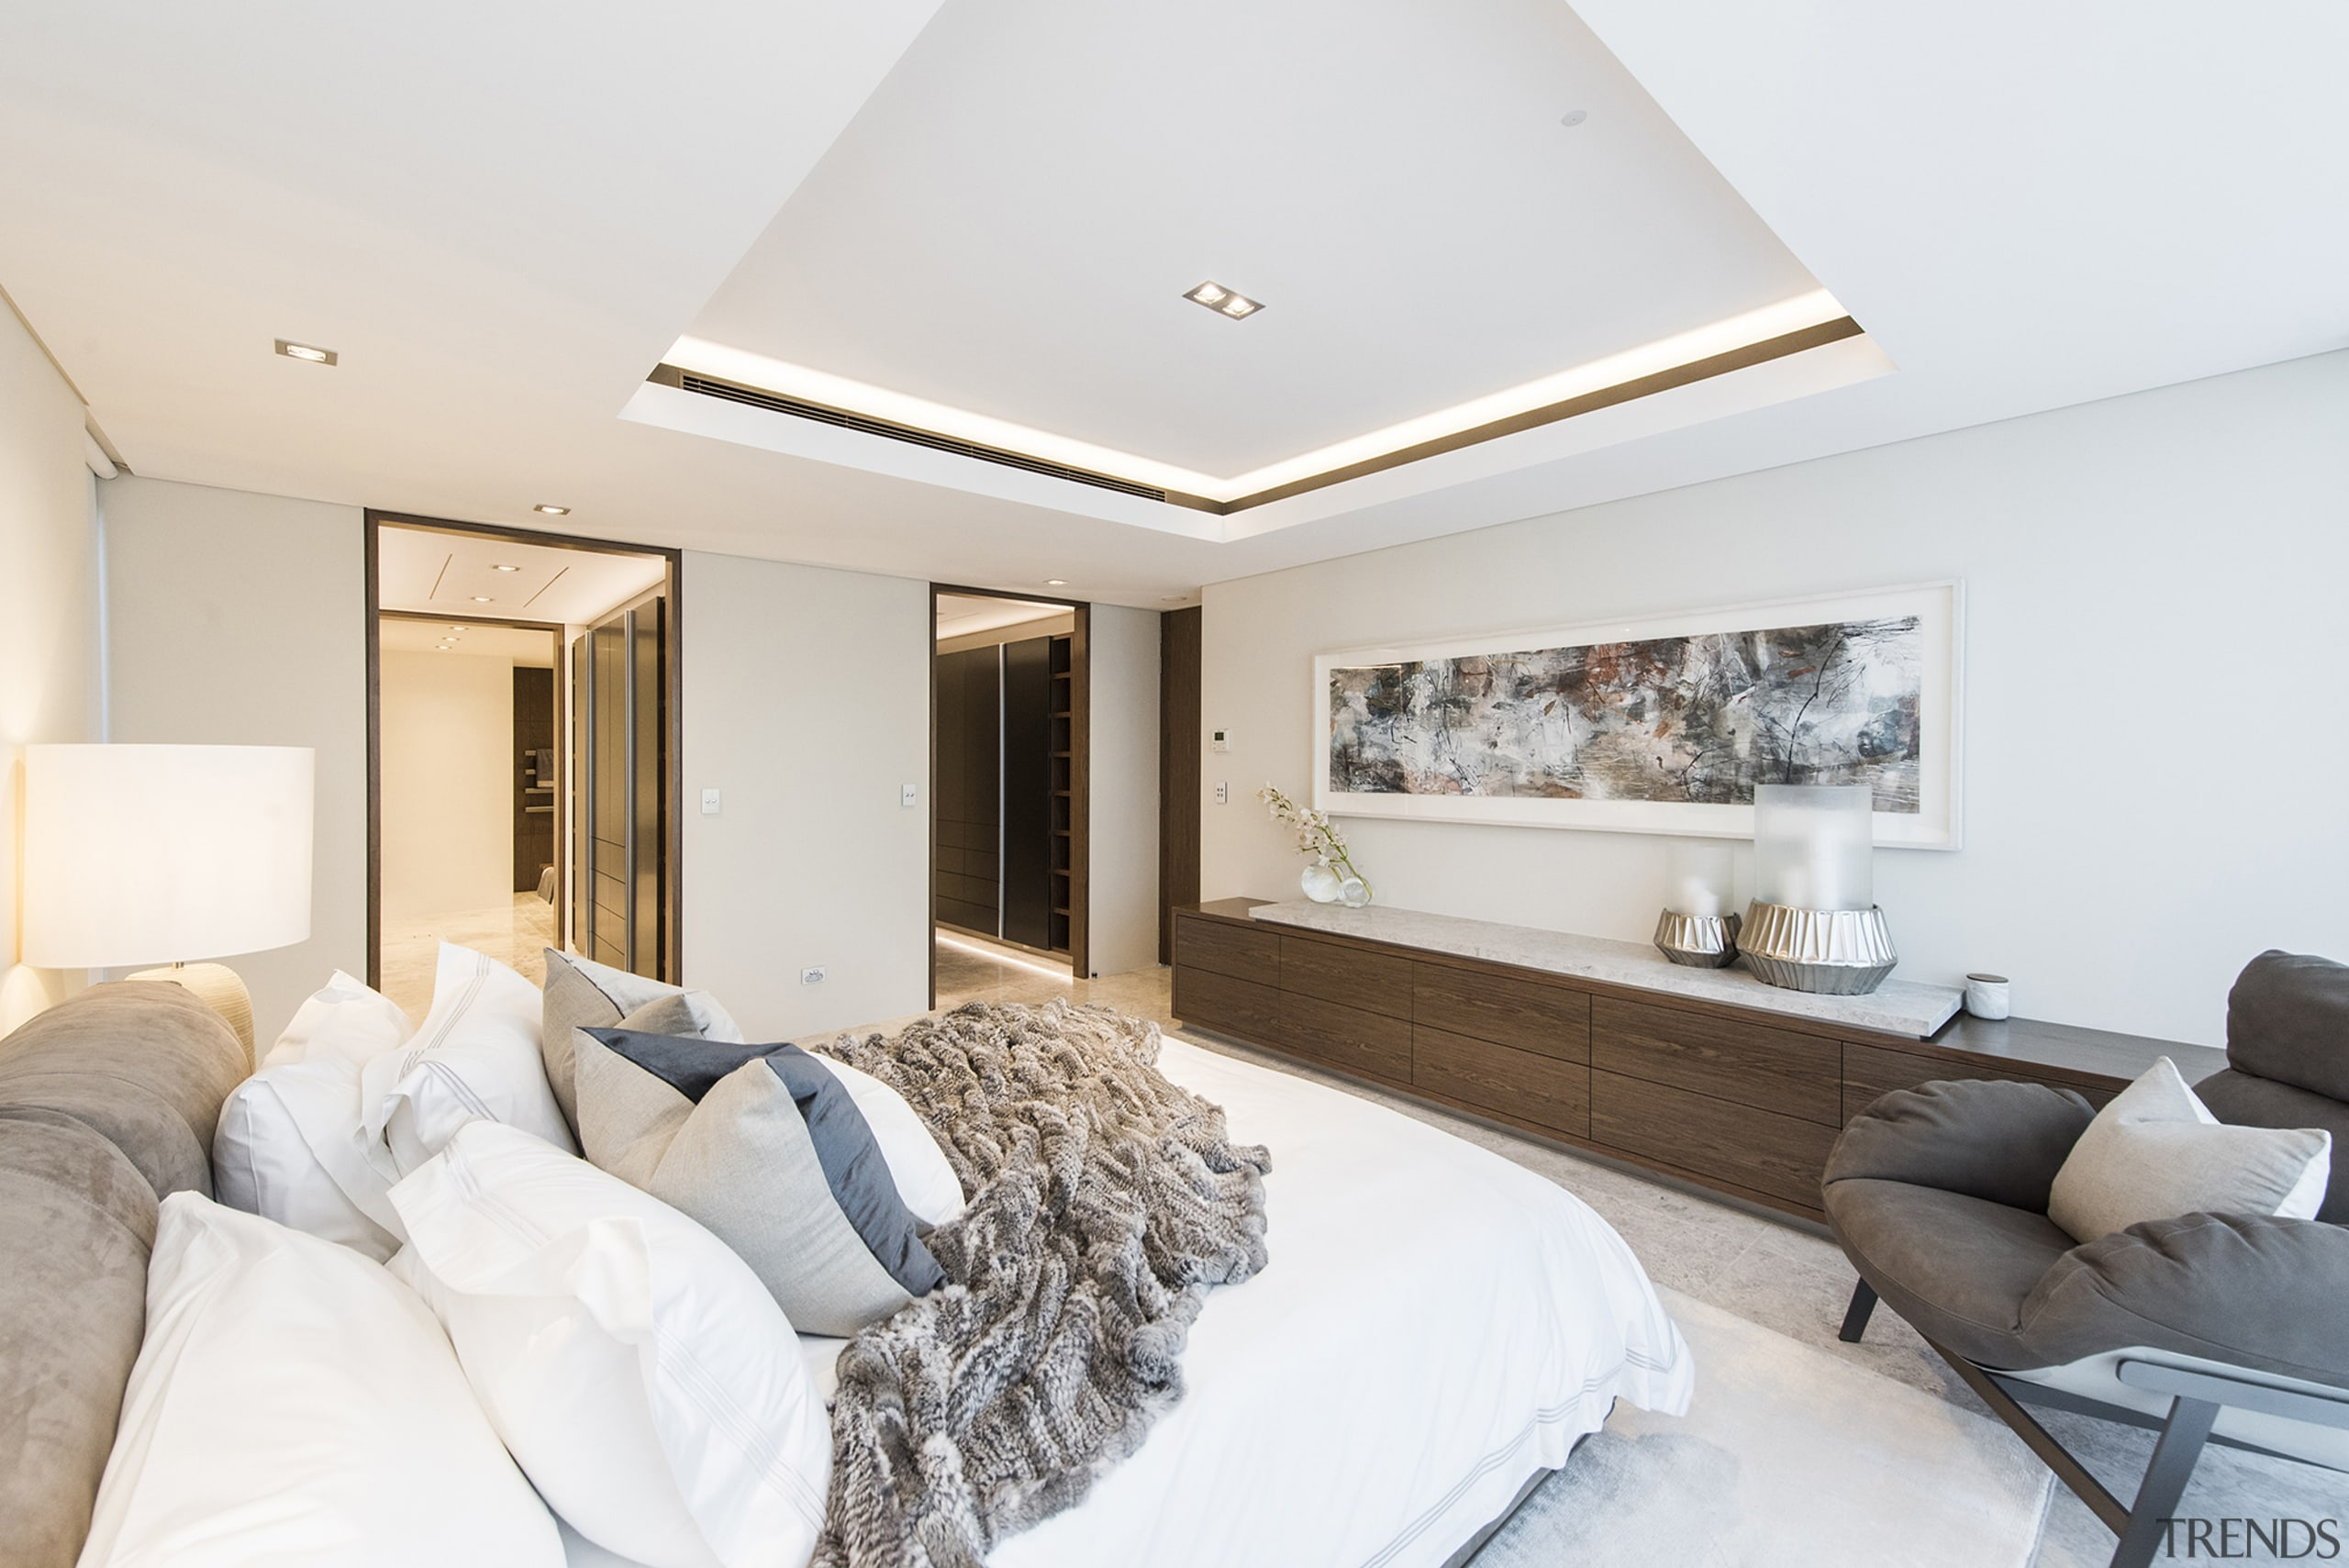 This master bedroom, with dual entries to the ceiling, home, interior design, living room, property, real estate, room, suite, white